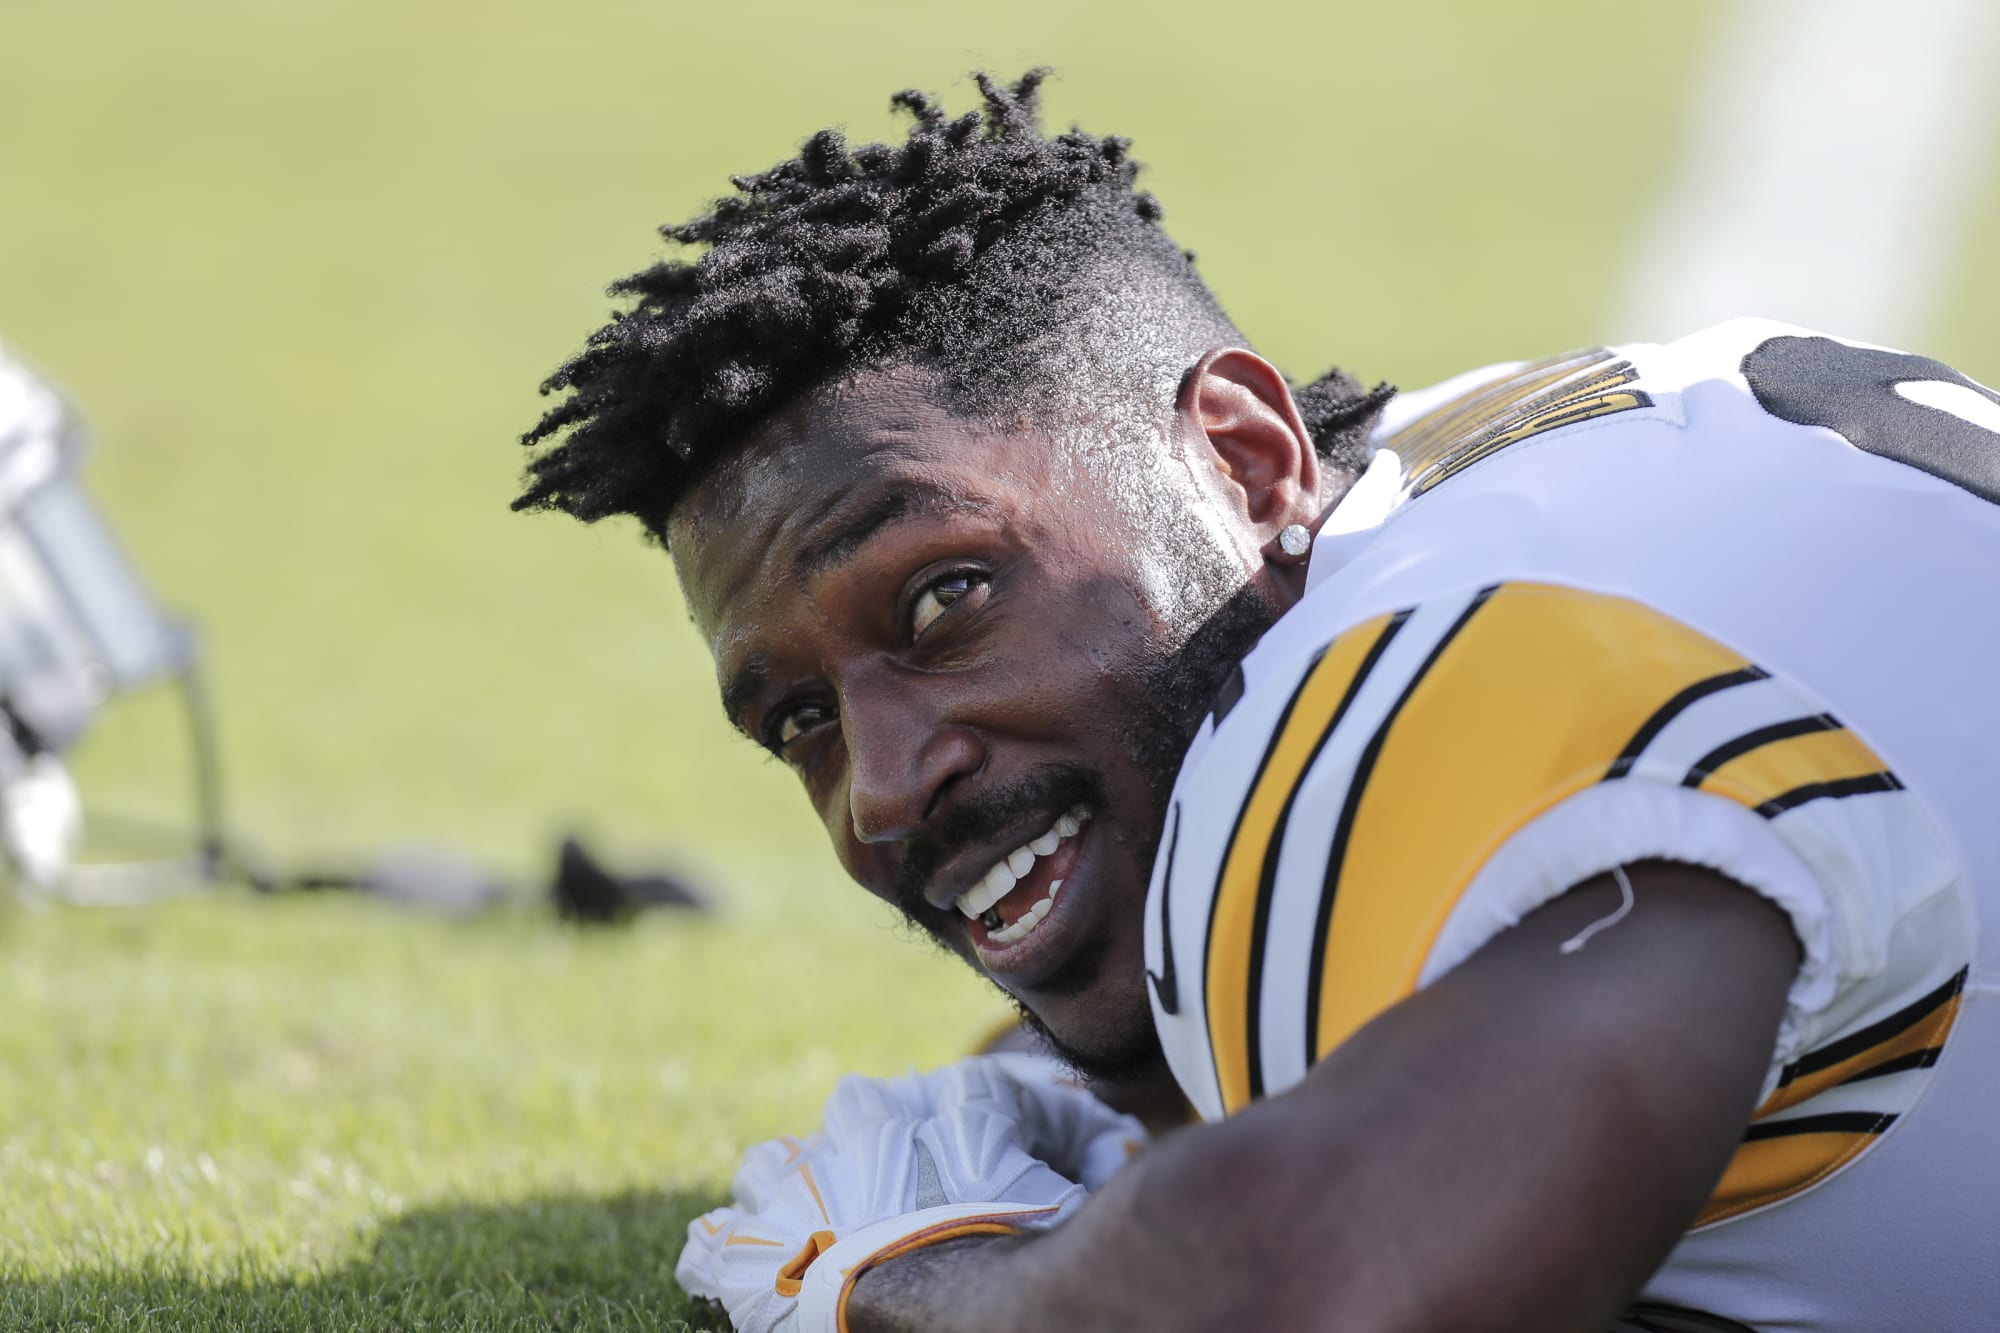 Another team emerges as a possible Antonio Brown destination